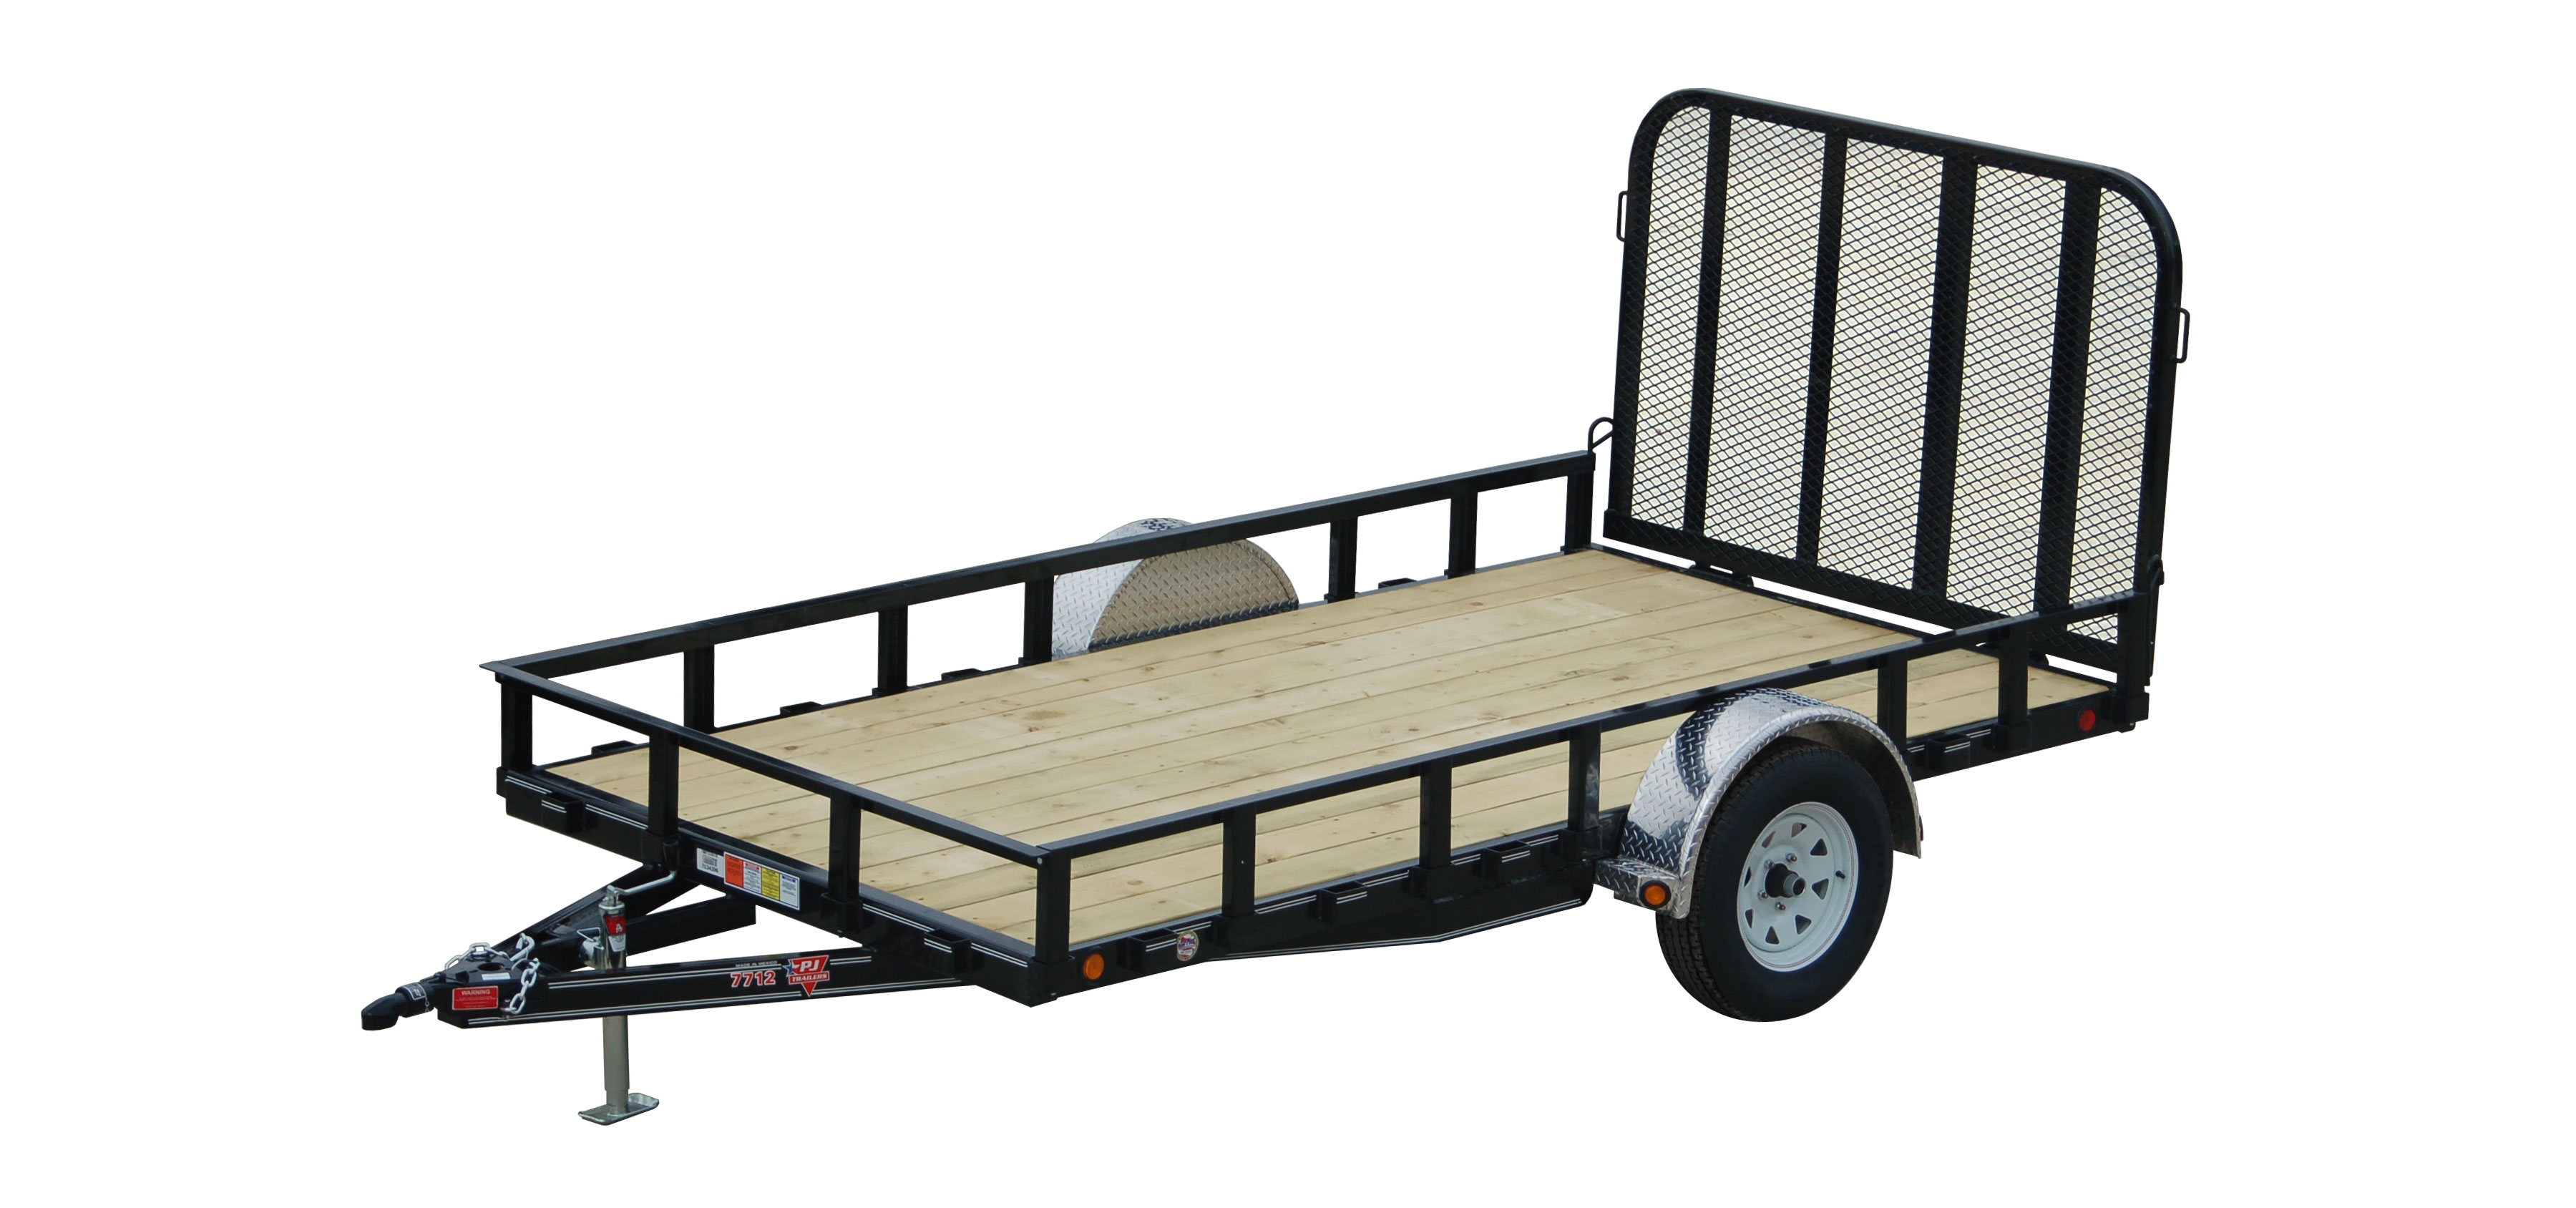 Pj Trailers 77 Channel Utility U7 For Sale In South Londonderry Trailer Wire Diagram